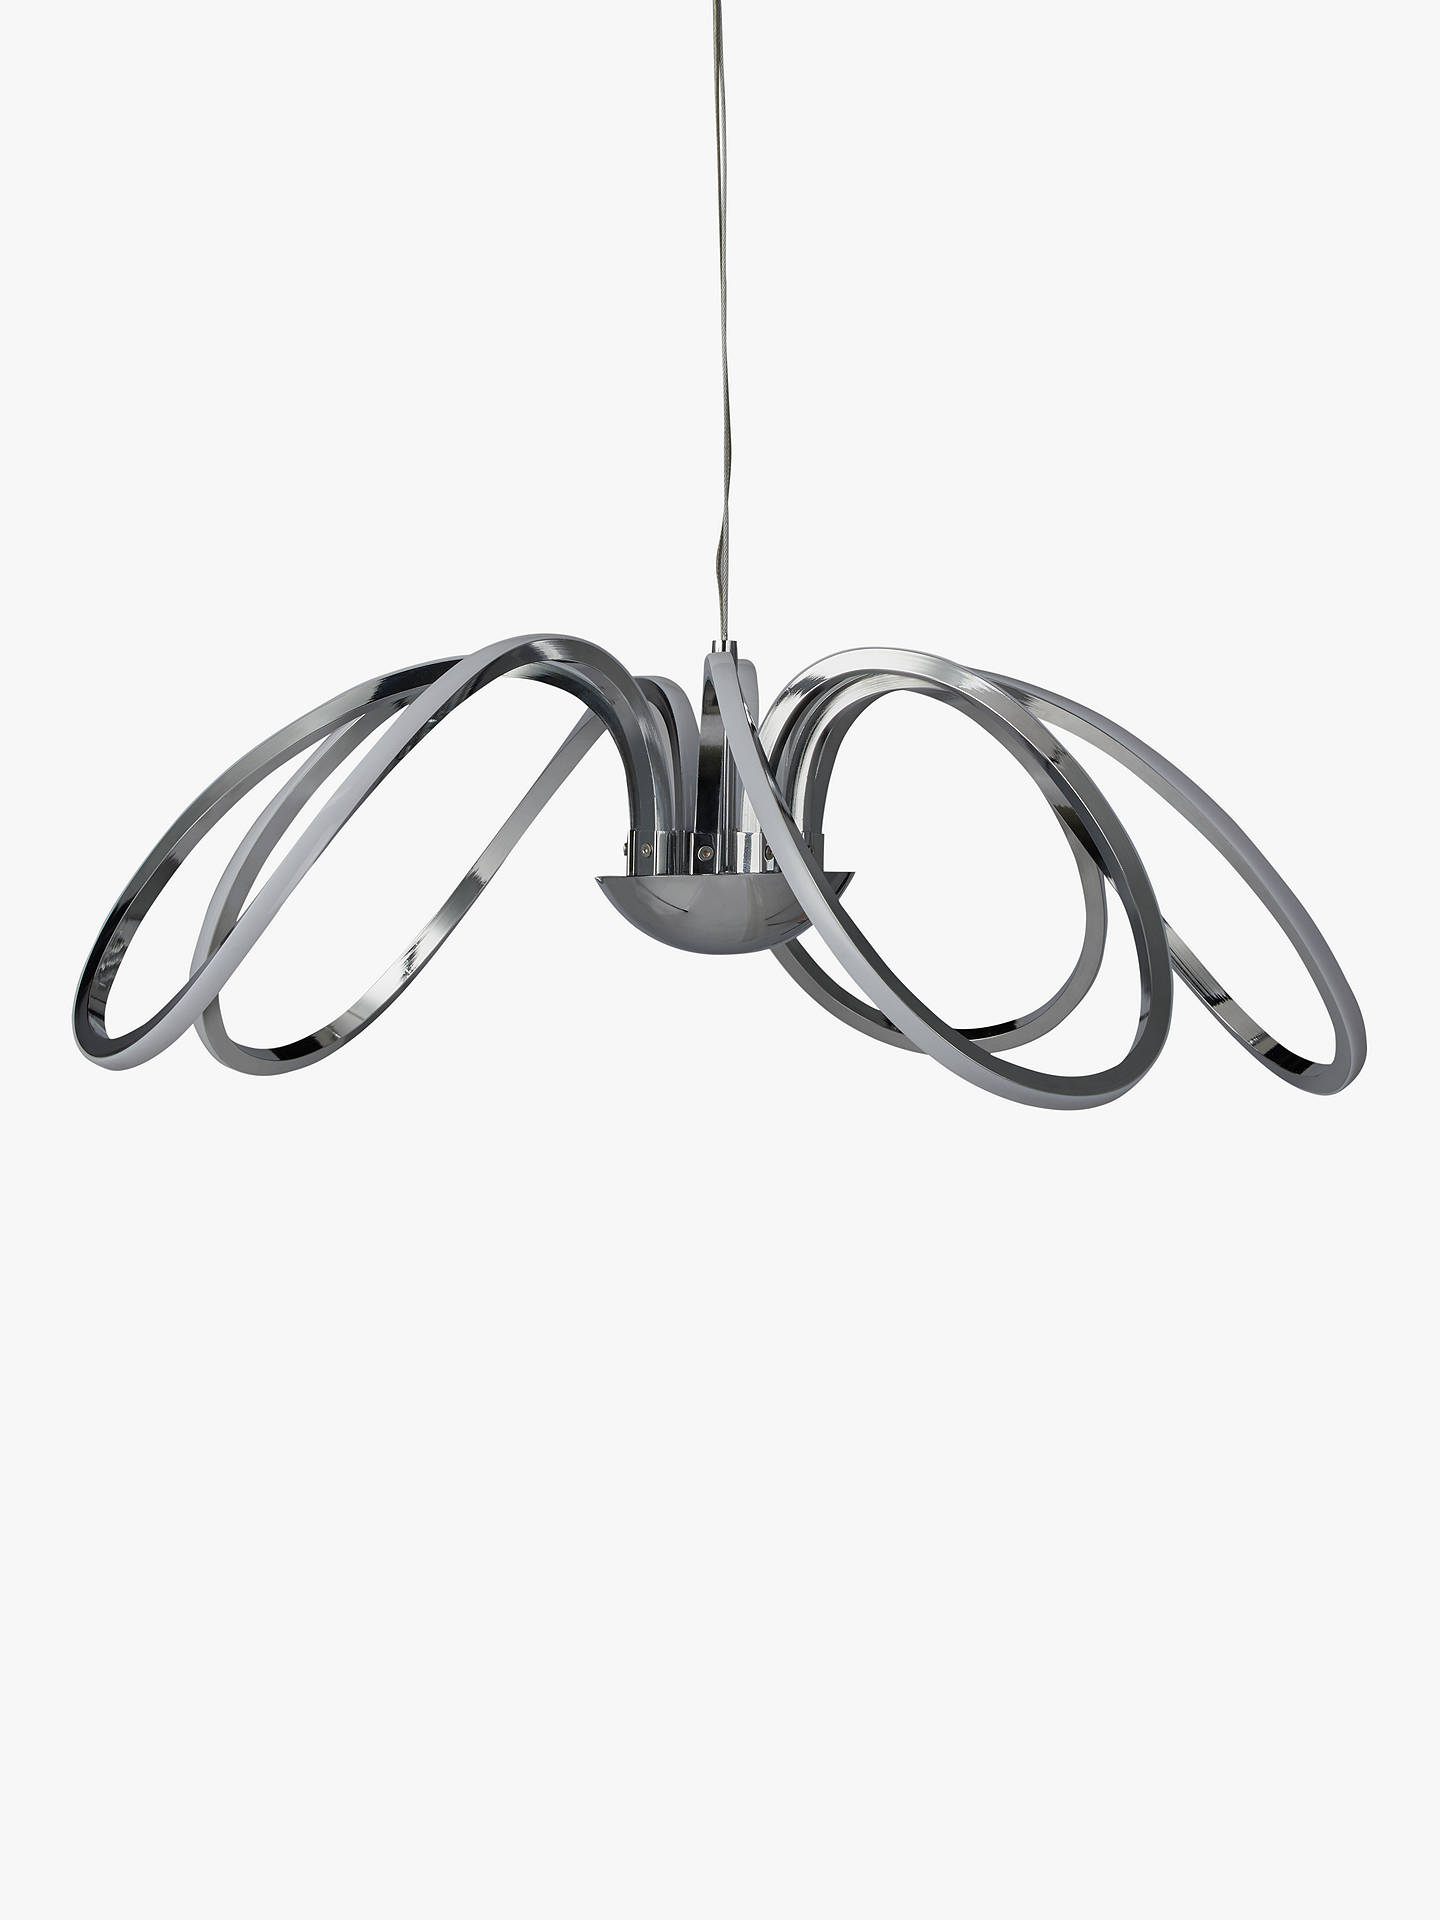 John Lewis Partners Ora Led 5 Arm Ceiling Light Chrome Online At Johnlewis